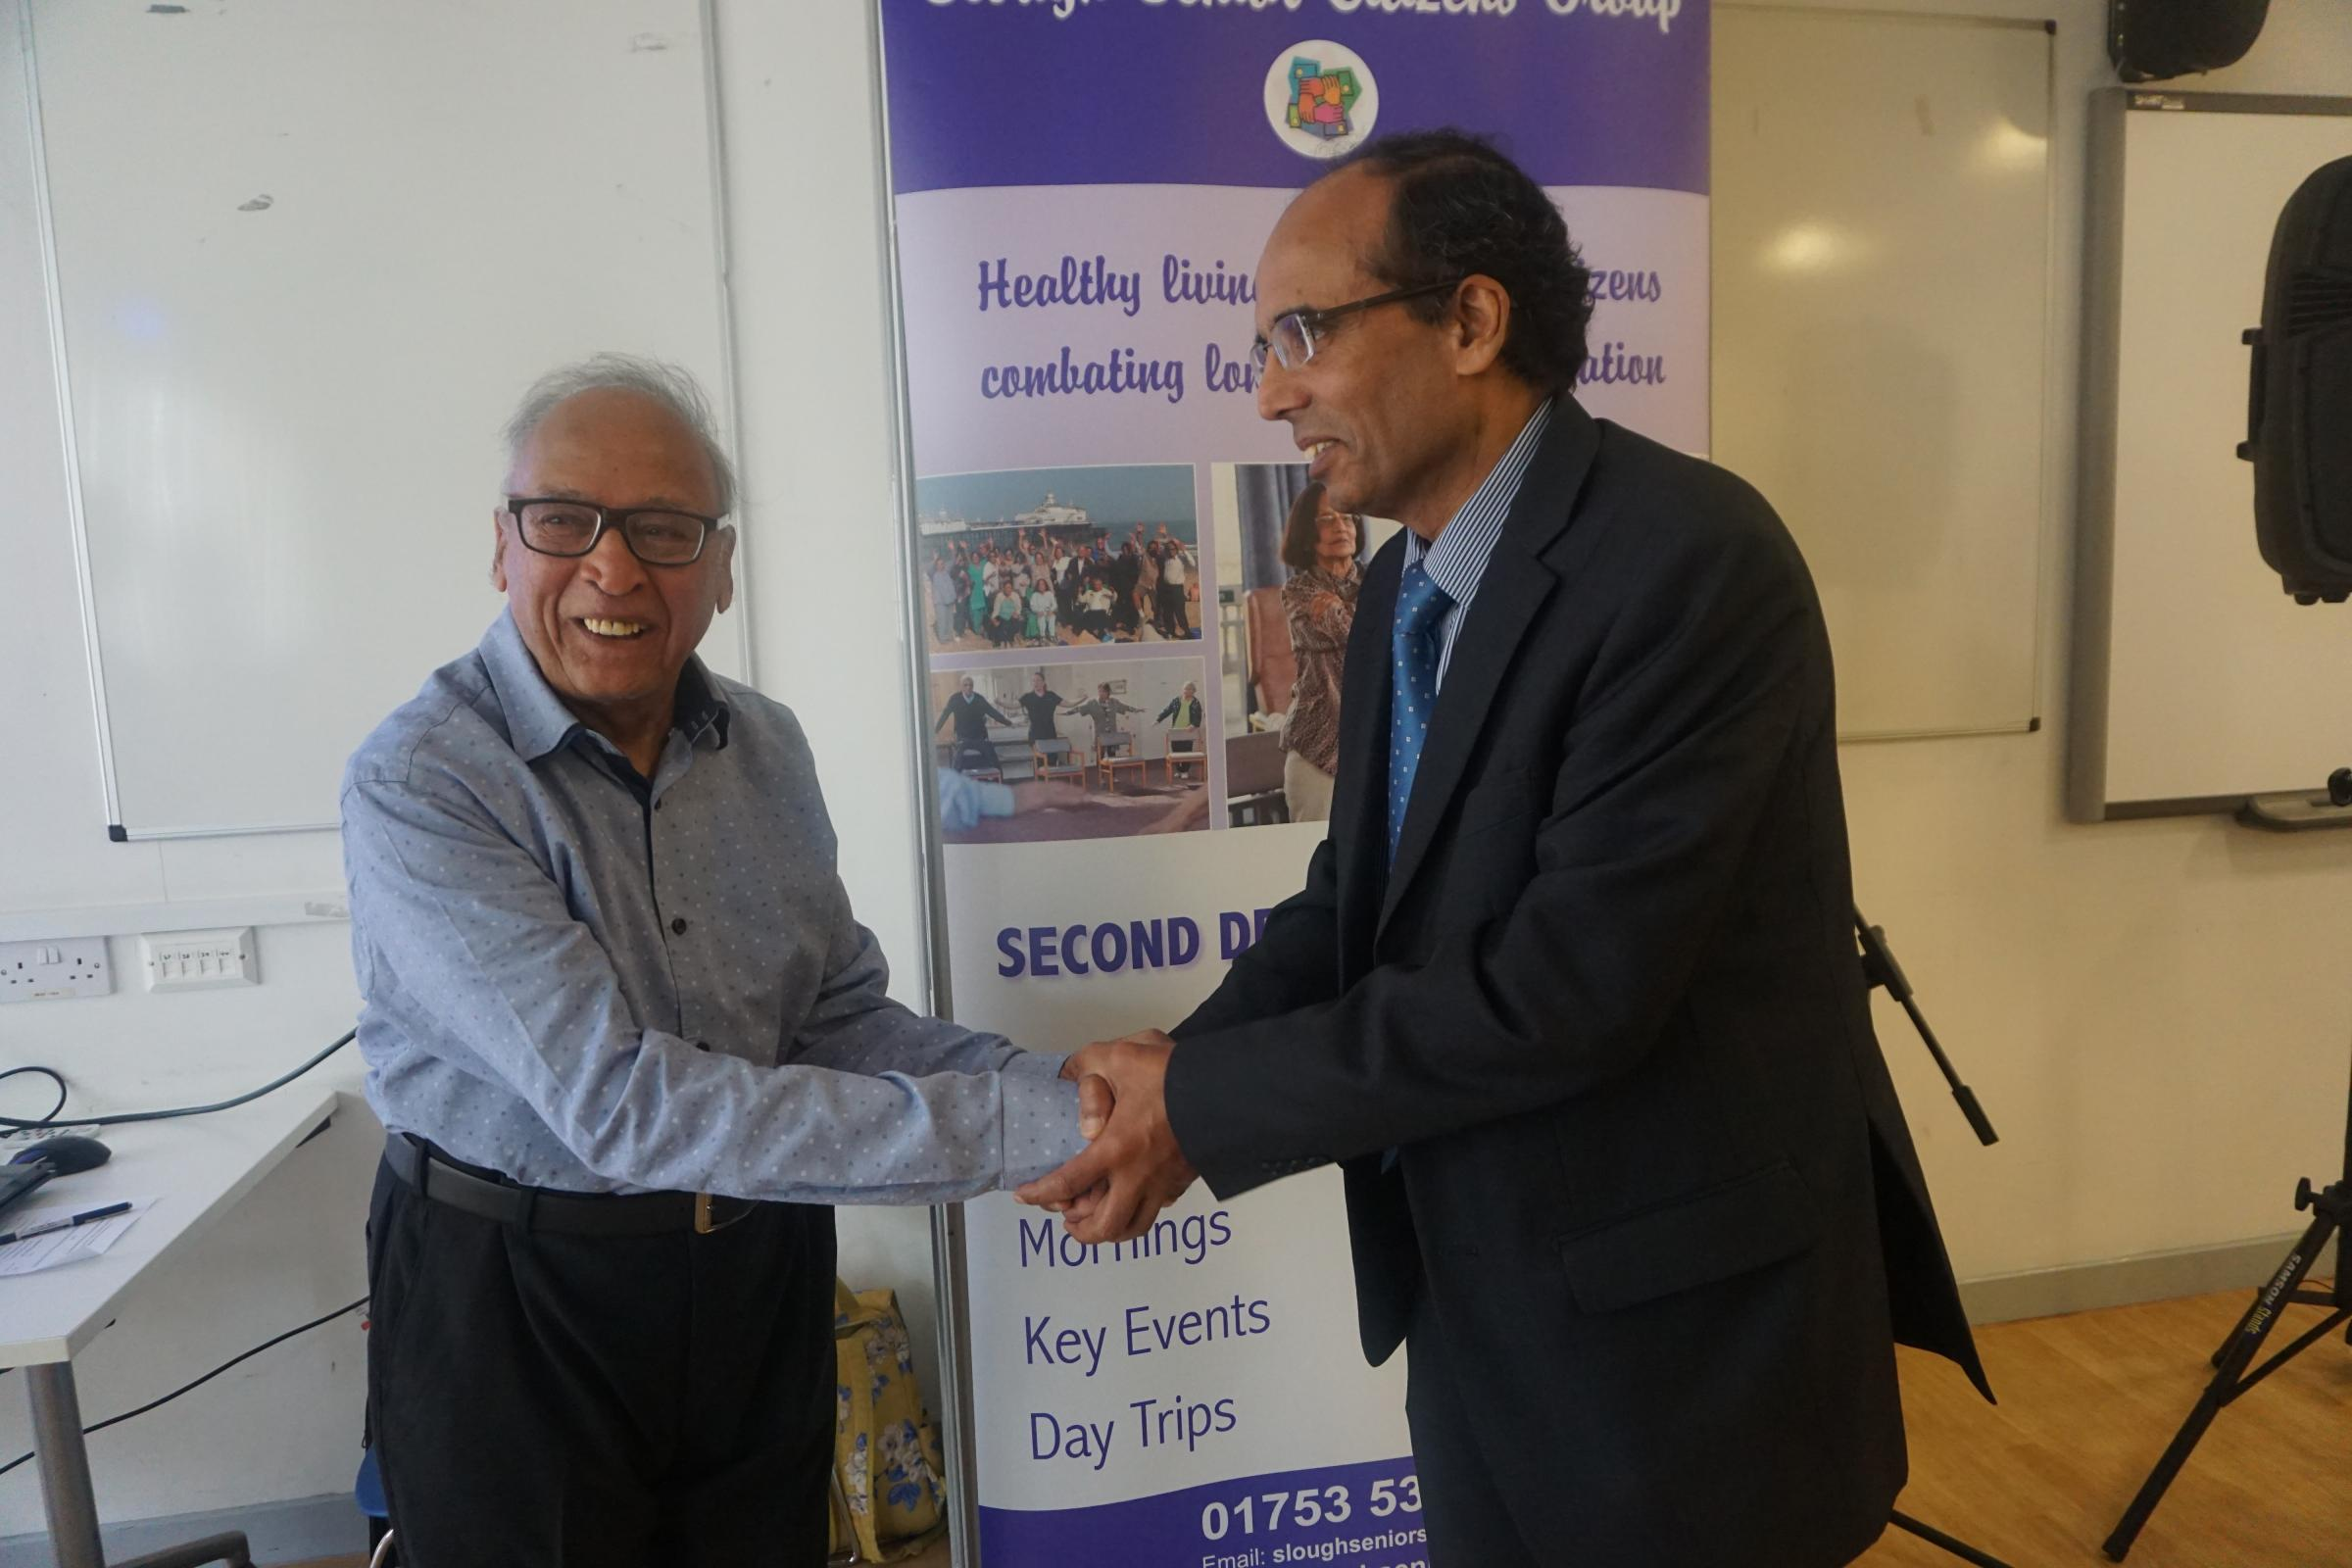 Doctor Sadhra is welcomed by Mr Gupta